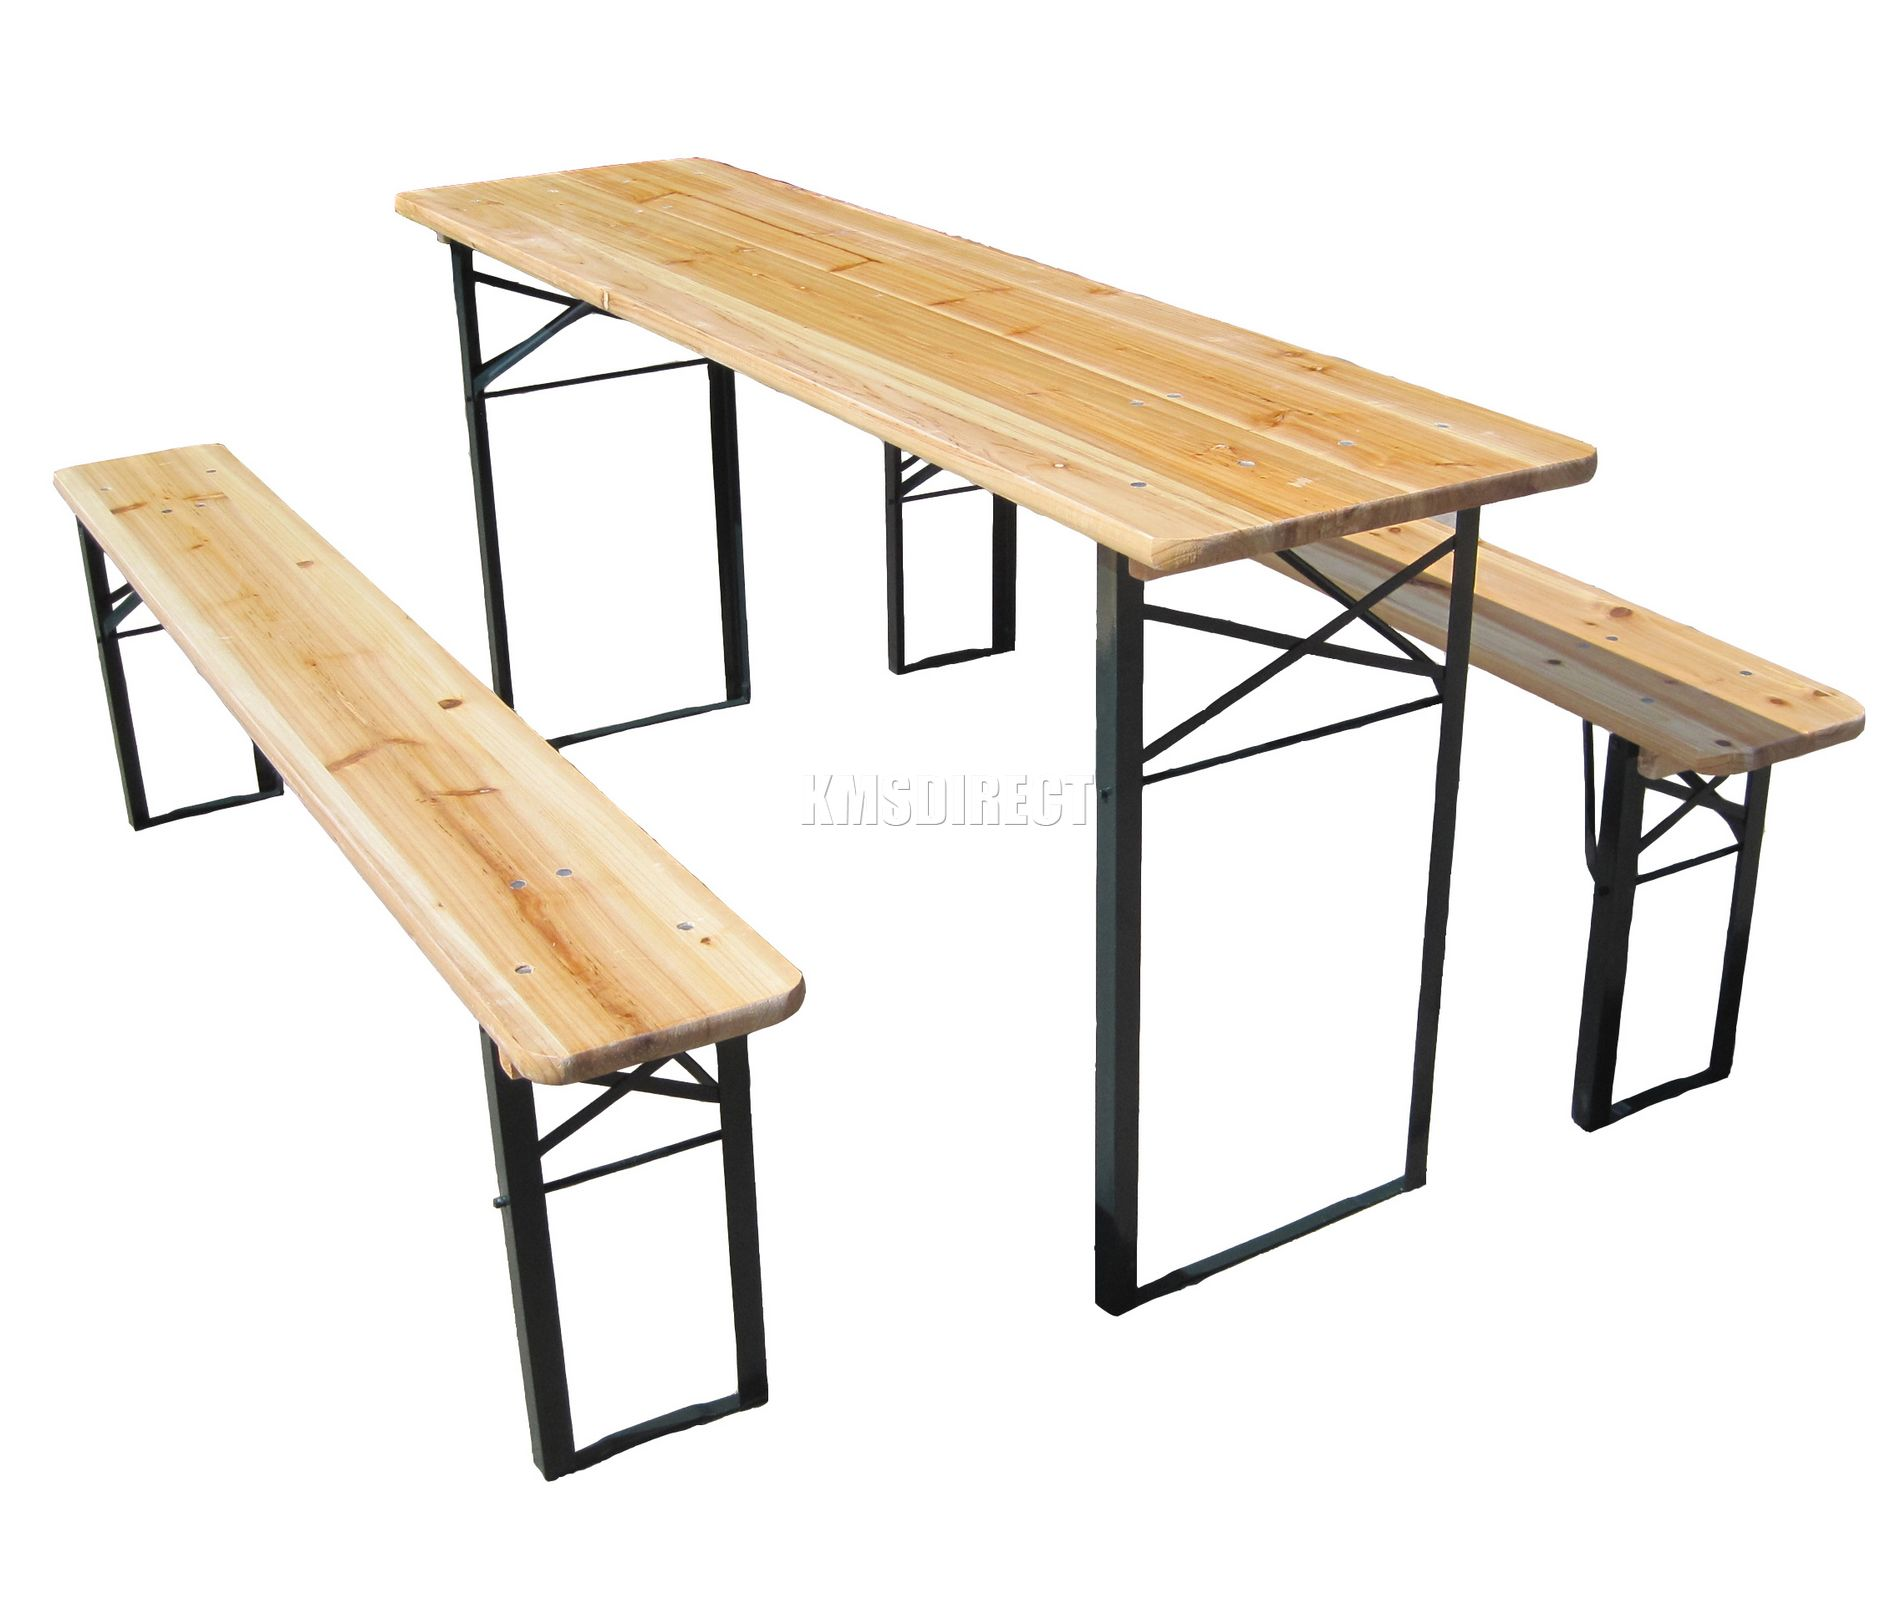 Wooden Folding Beer Table Bench Set Trestle Picnic Garden Furniture Steel Leg Ebay